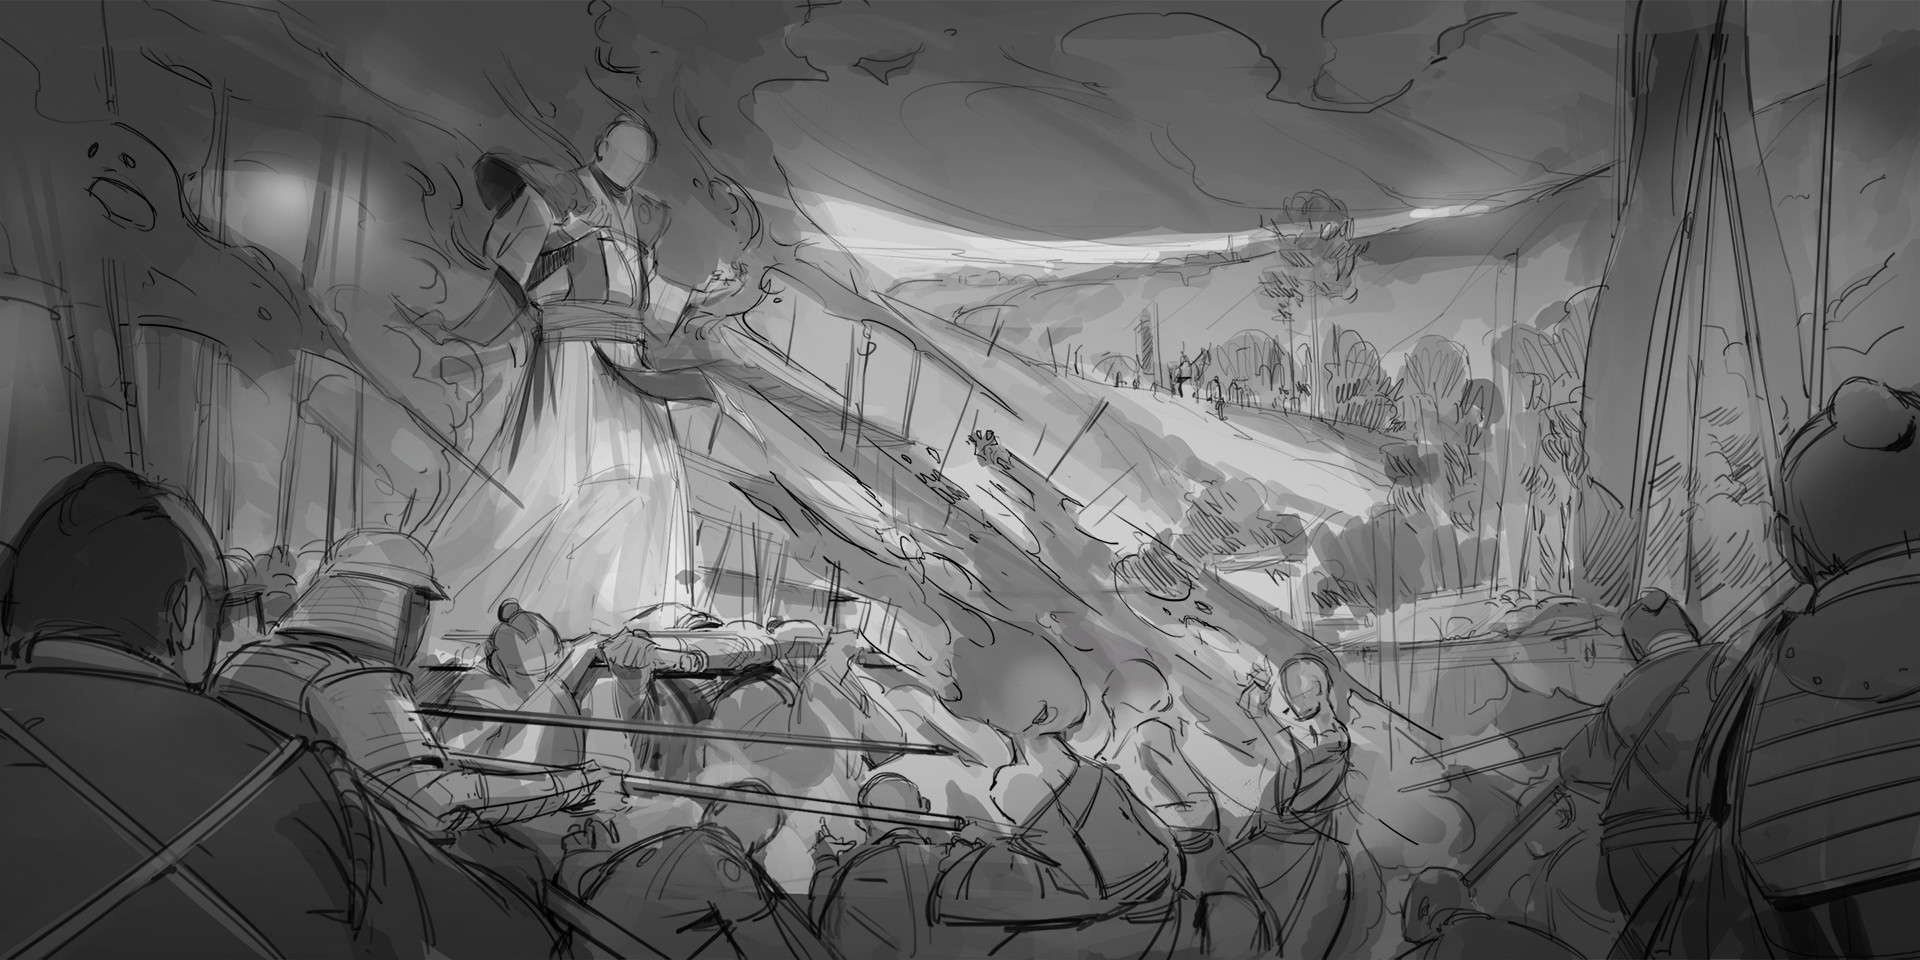 Klaus pillon theshogunate keyframes sketch 003